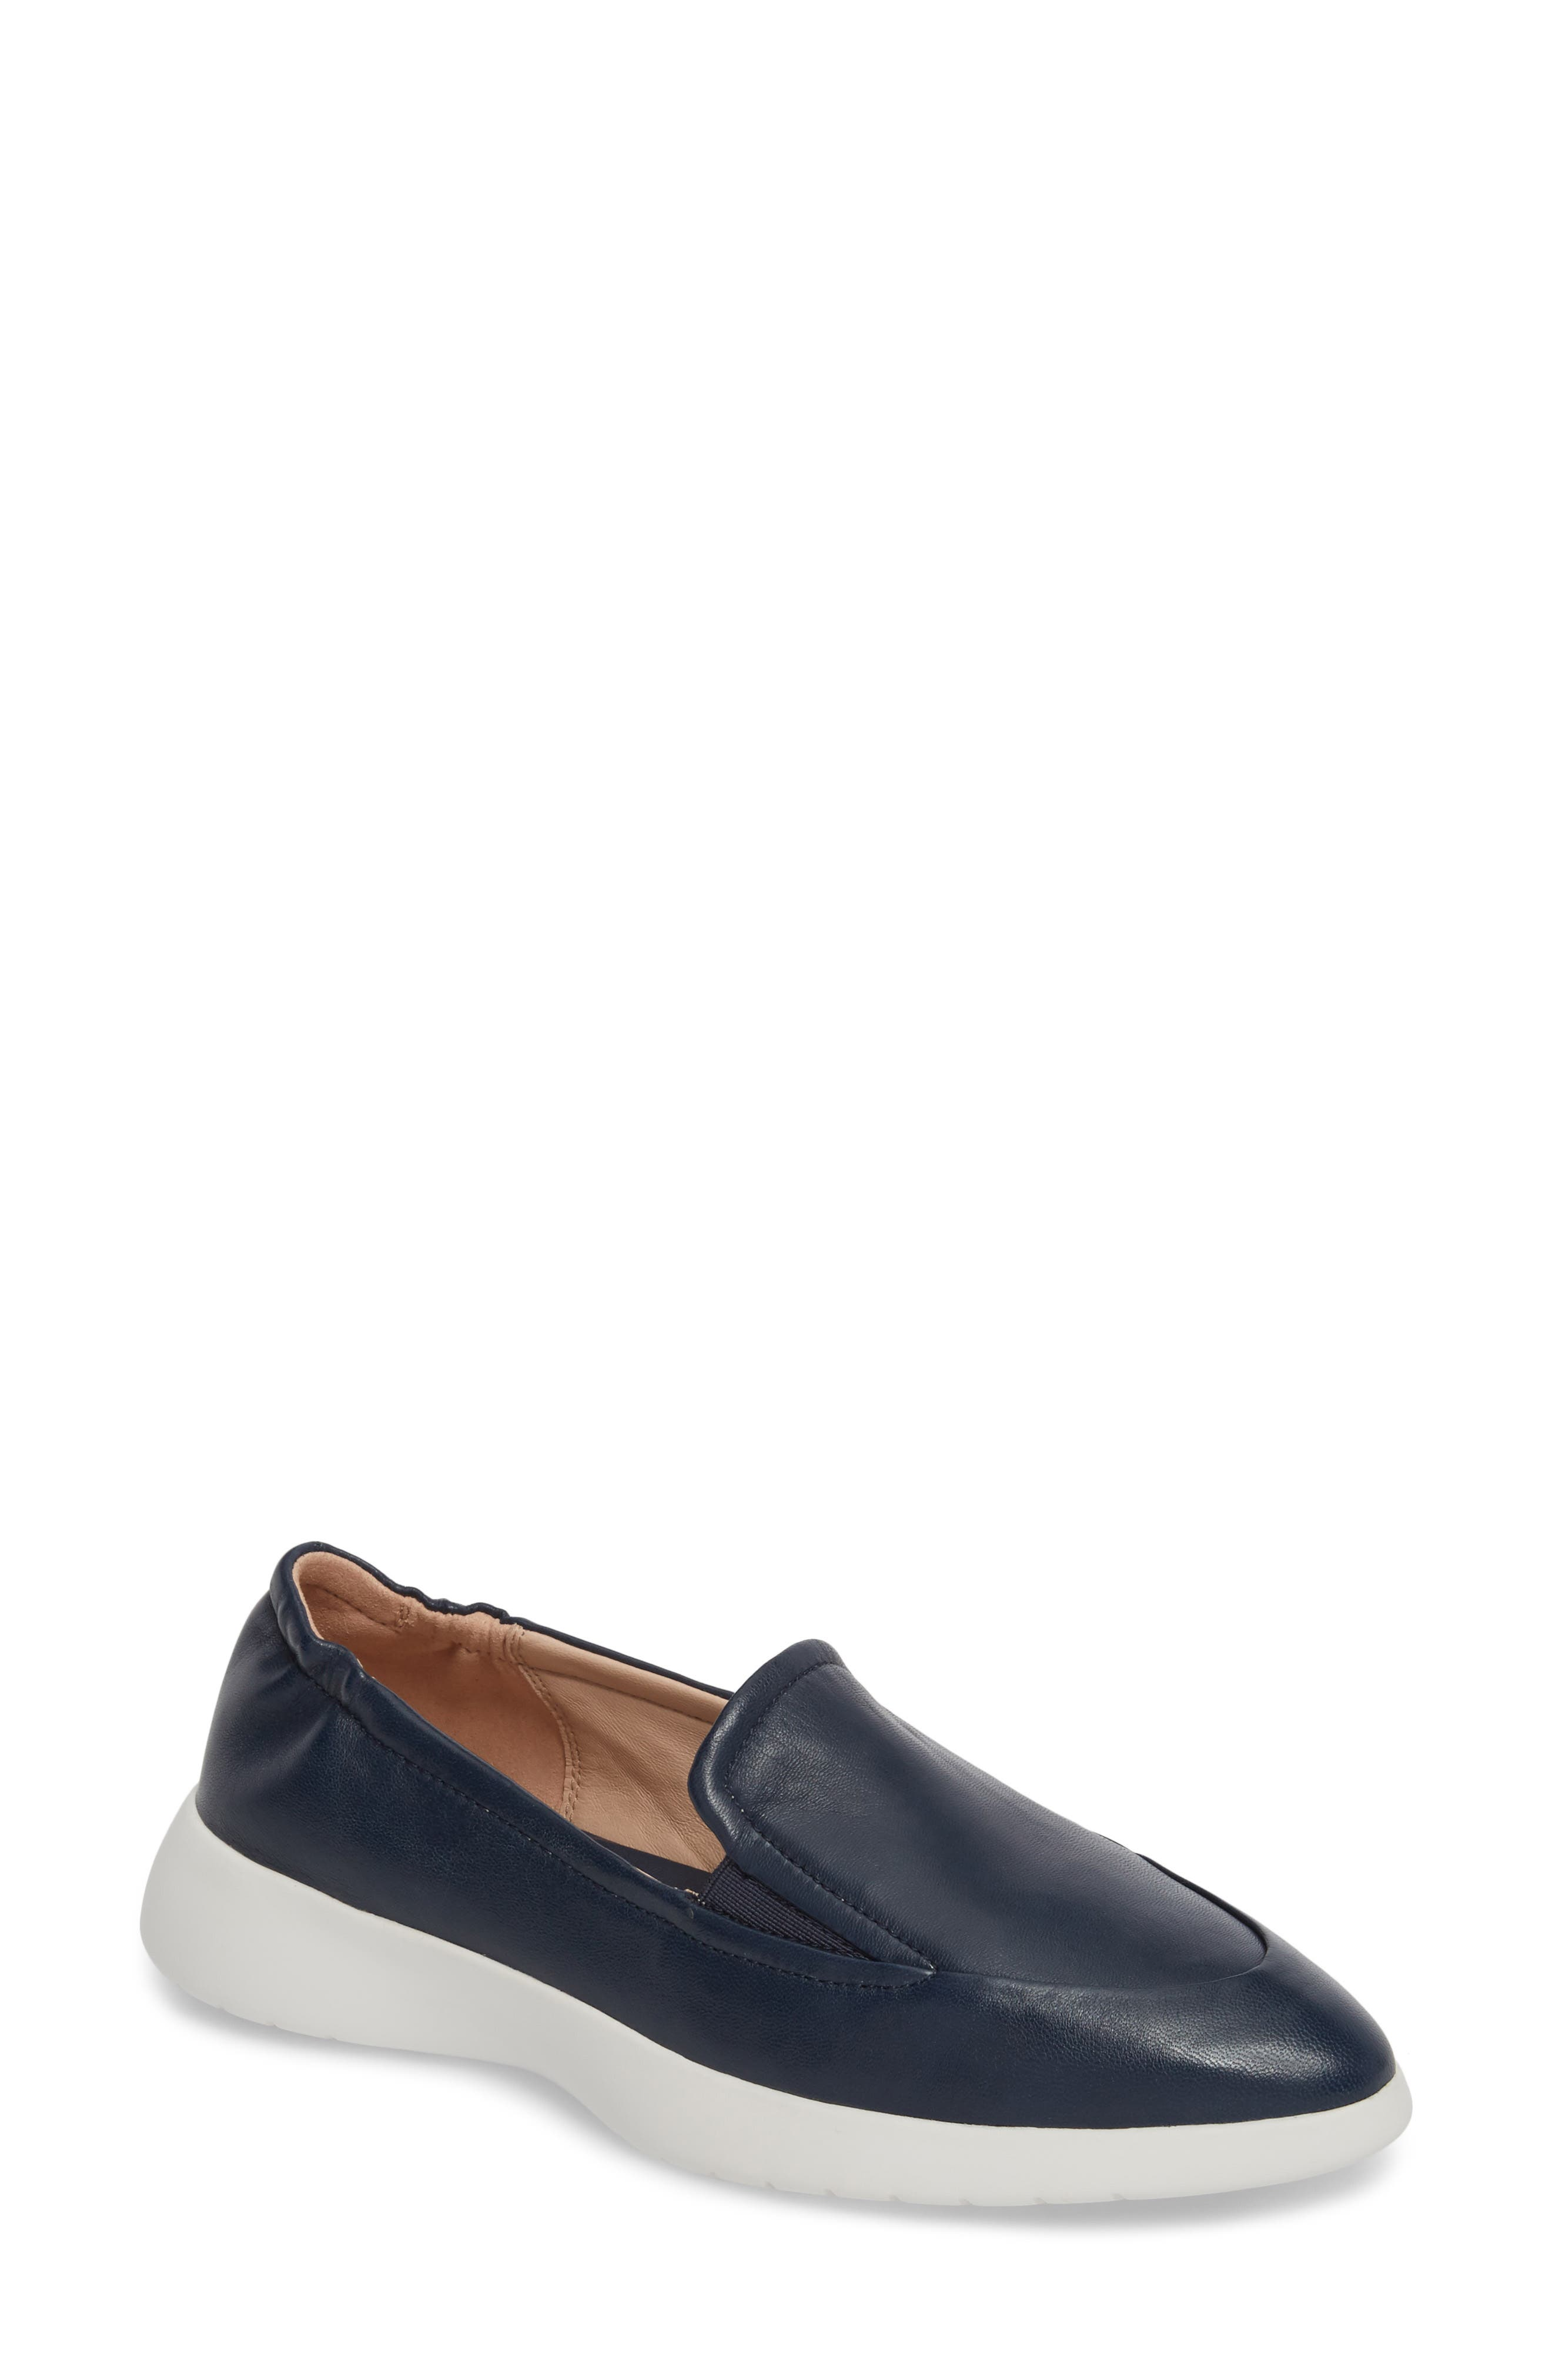 Dana Loafer Sneaker,                         Main,                         color, Navy Leather